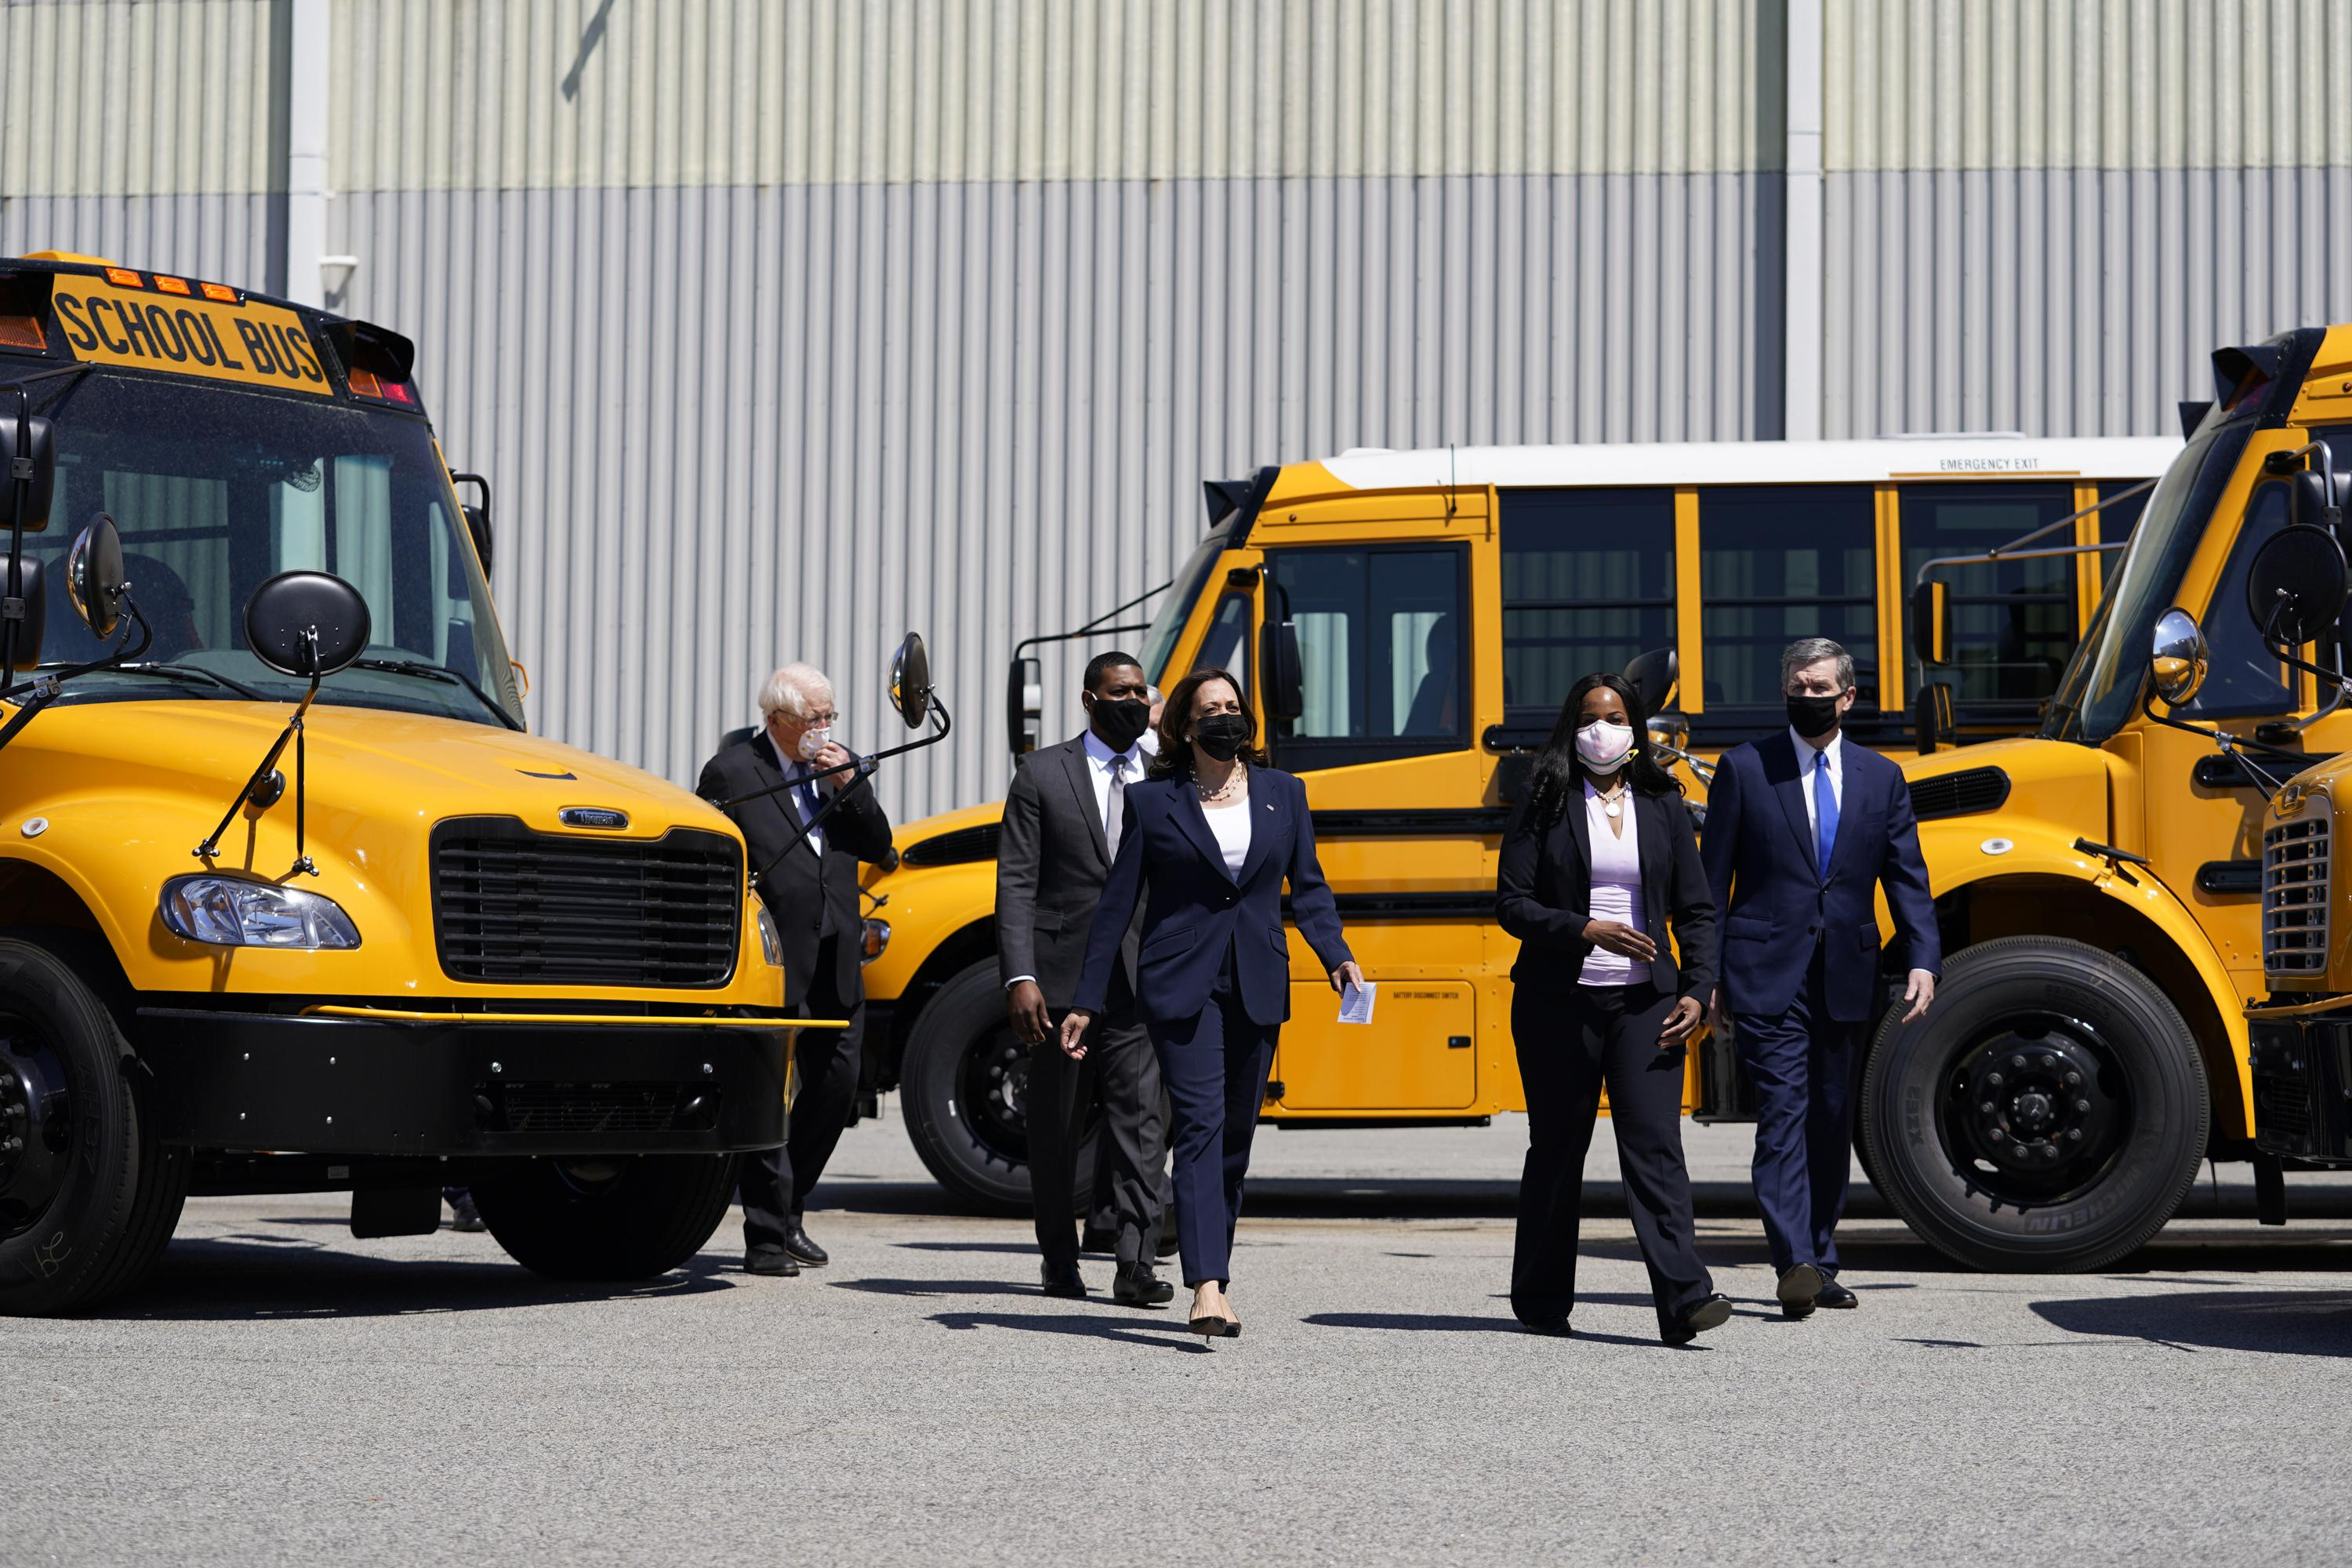 Dems push $25B to electrify school buses, a Biden priority